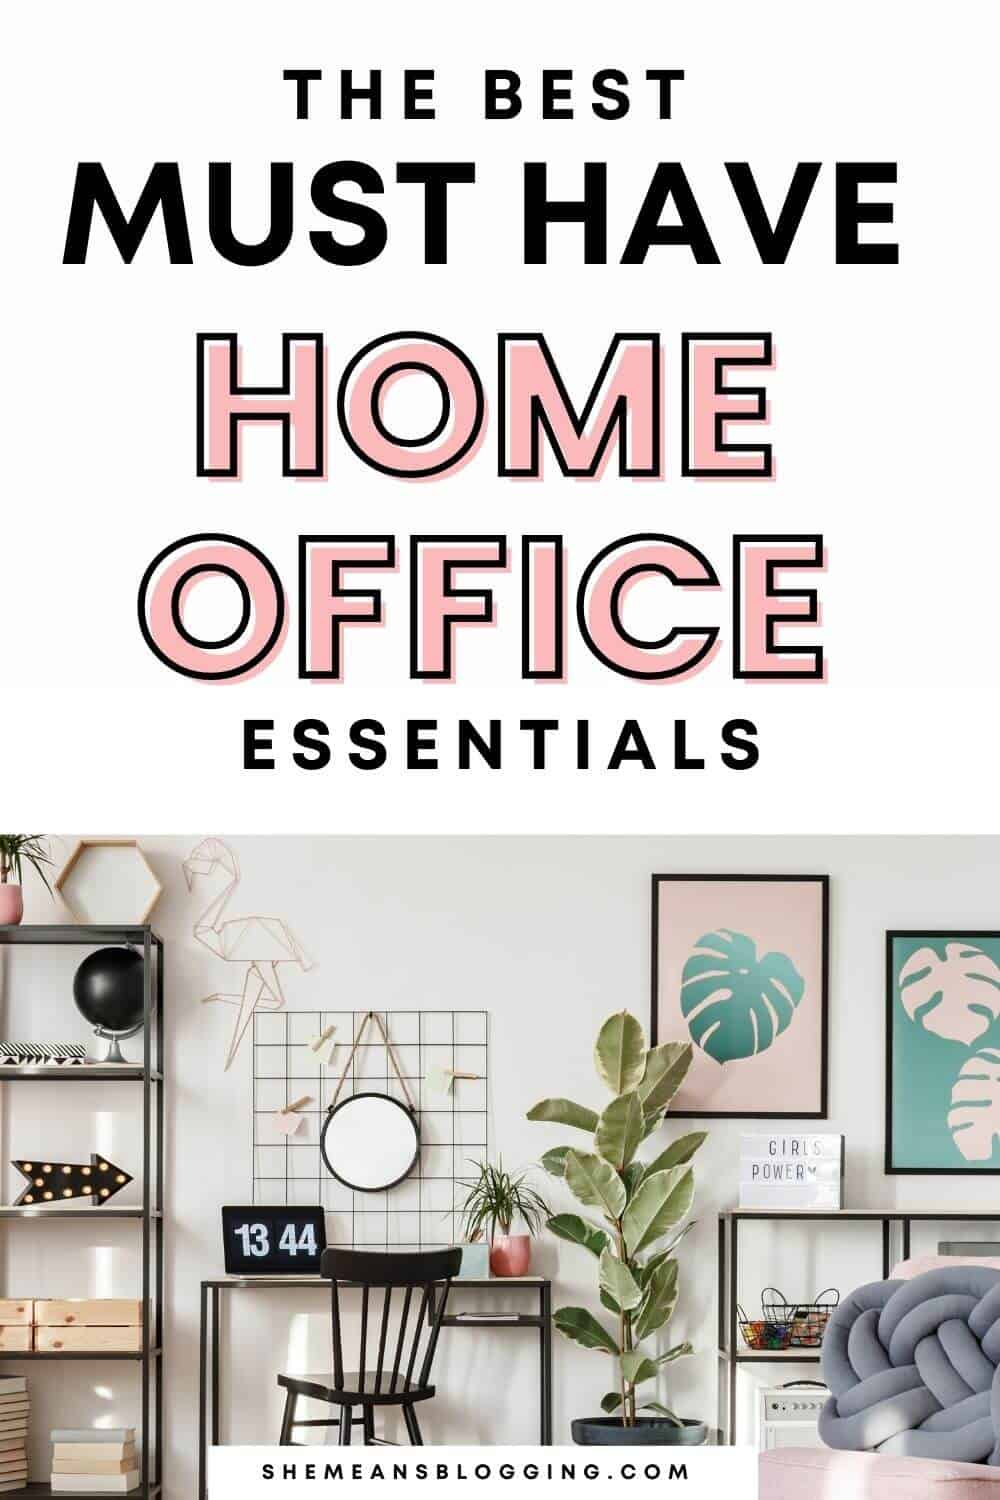 Thinking for a perfect home workplace? These are some best must have home office essentials! Make your own work at home home office with these home office items. Click to check out work from home office essentials.